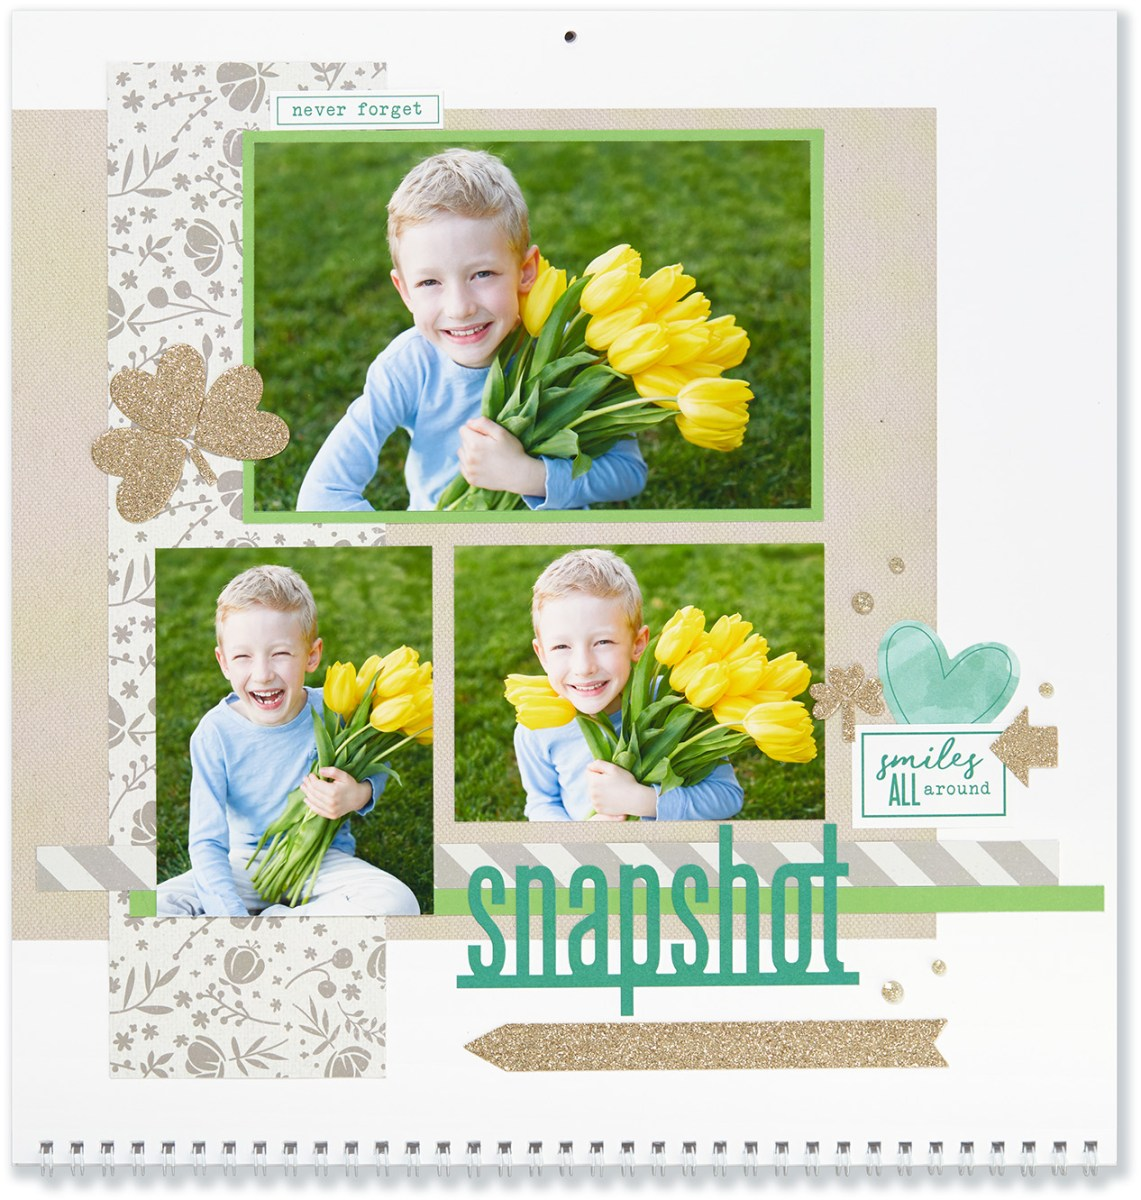 Through the Year #ctmh #closetomyheart #throughtheyear #calendar #kit #scrapbooking #scrapbook #memorykeeping #keepsake #gift #diy #family #Chrismas #present #photos #gold #glitter #diecut #gems #snapshot #tulips #shamrock #clover